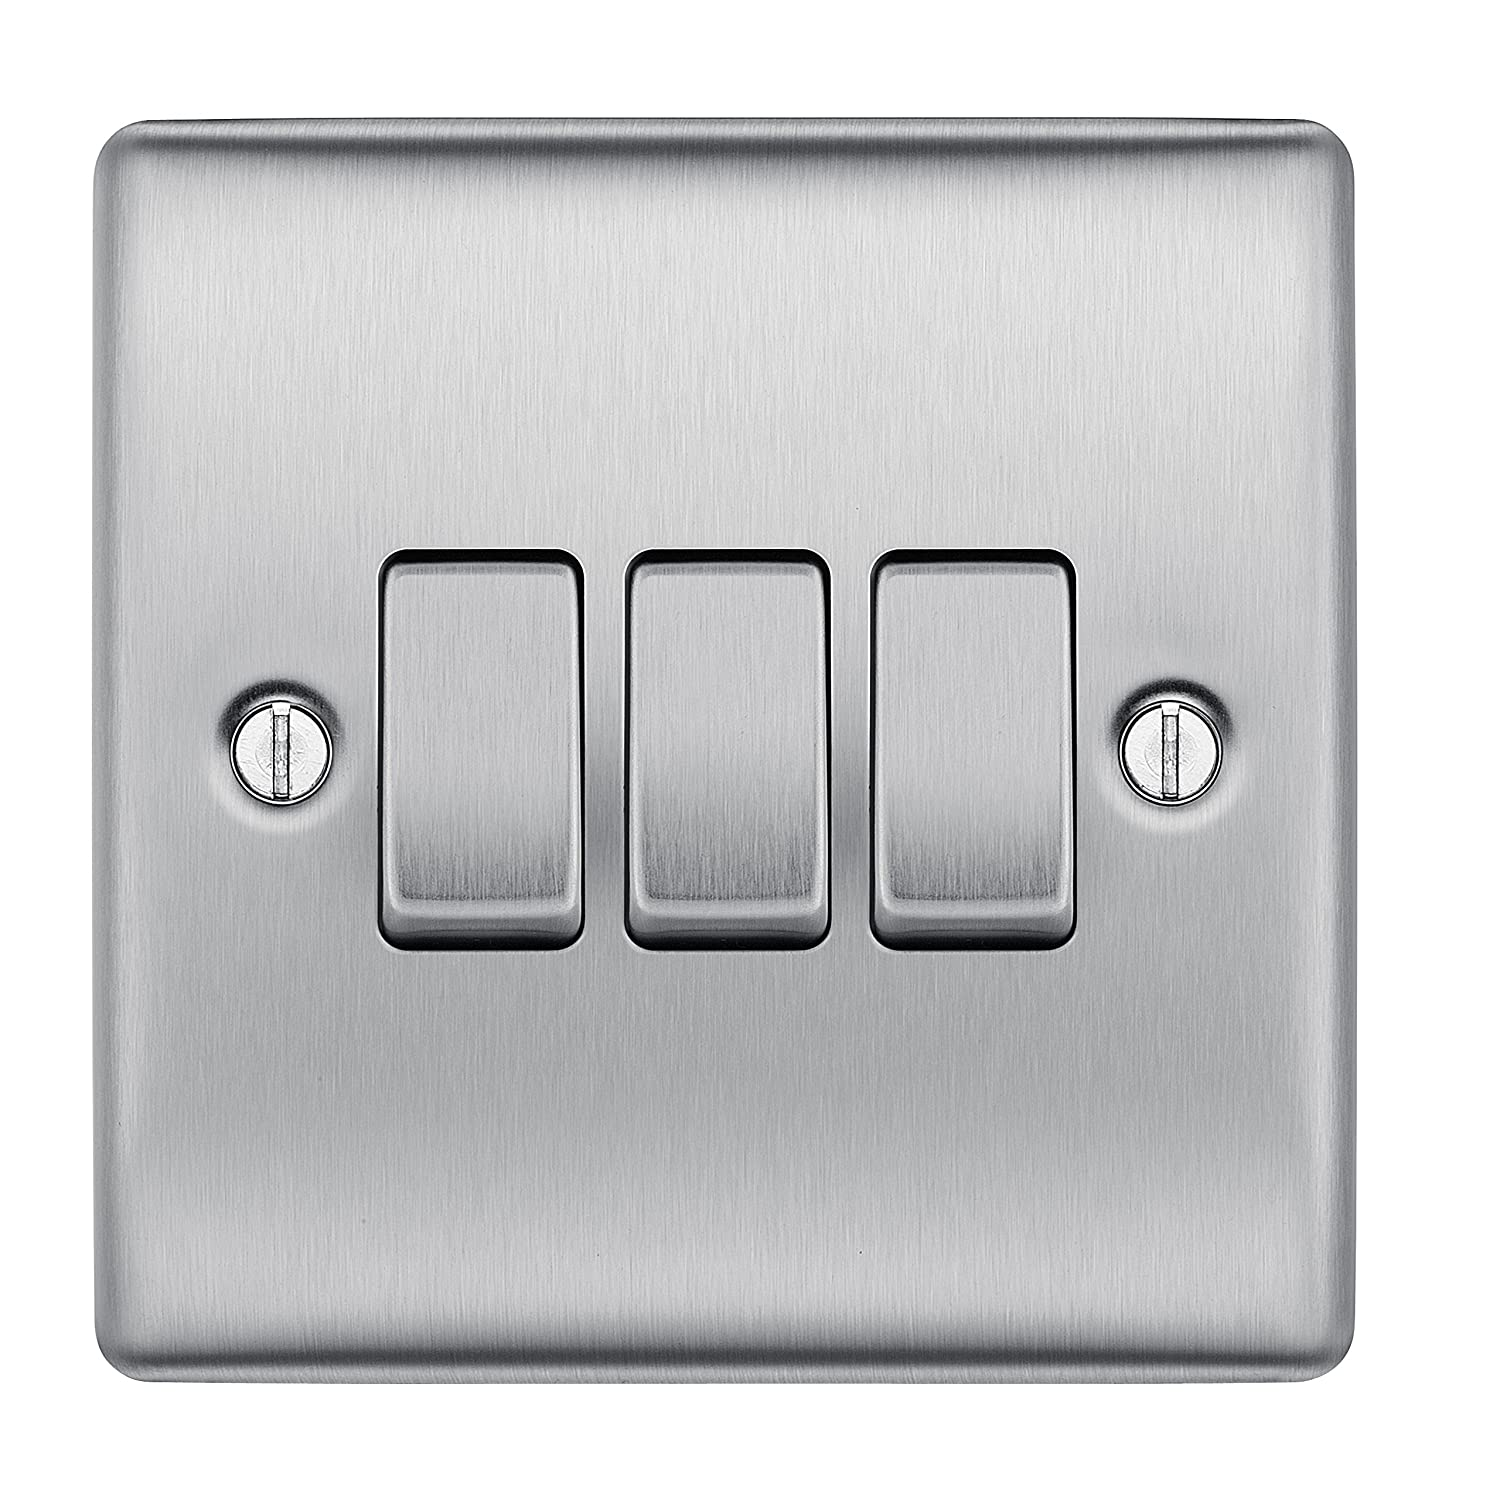 Bg Nbs43 10 A 3 Gang 2 Way Metal Brushed Steel Light Switch Amazon One Two Wiring Diagram In Addition Diy Tools